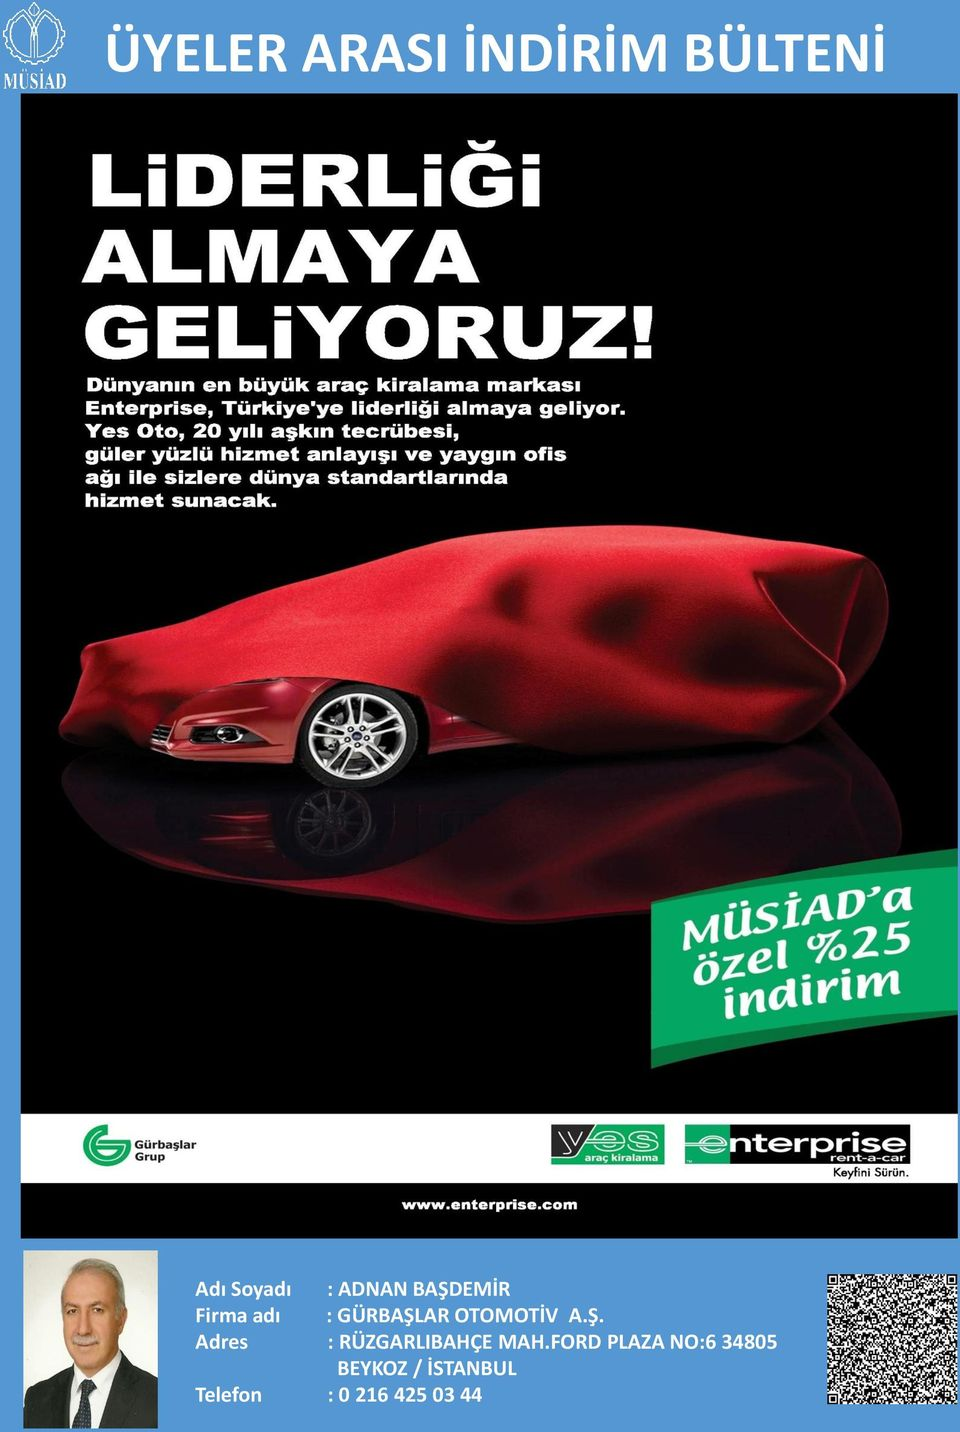 FORD PLAZA NO:6 34805 BEYKOZ /